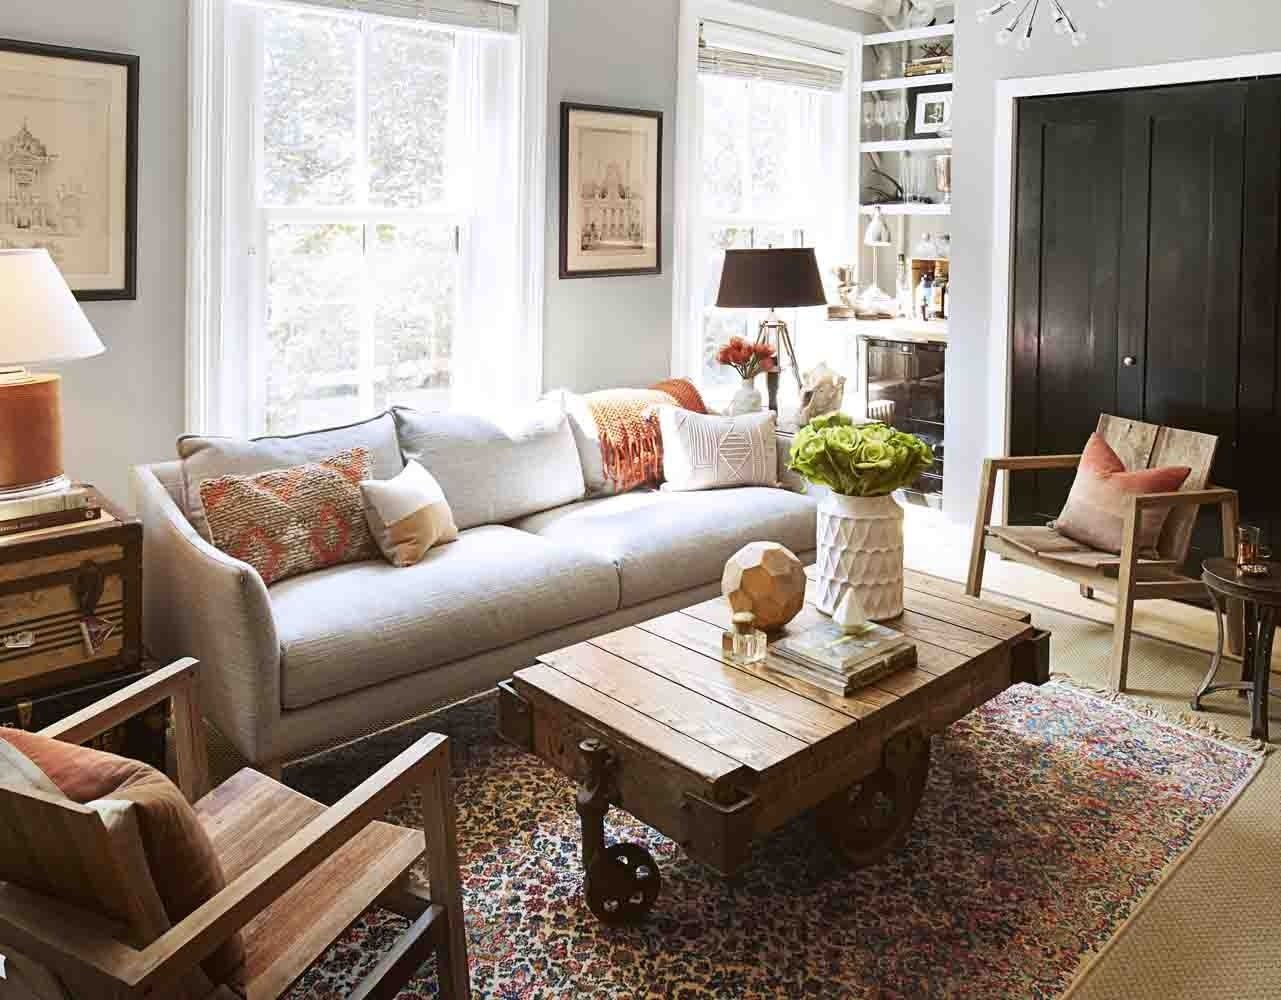 10 Trendy Decorating Ideas For Living Room 51 best living room ideas stylish living room decorating designs 23 2021